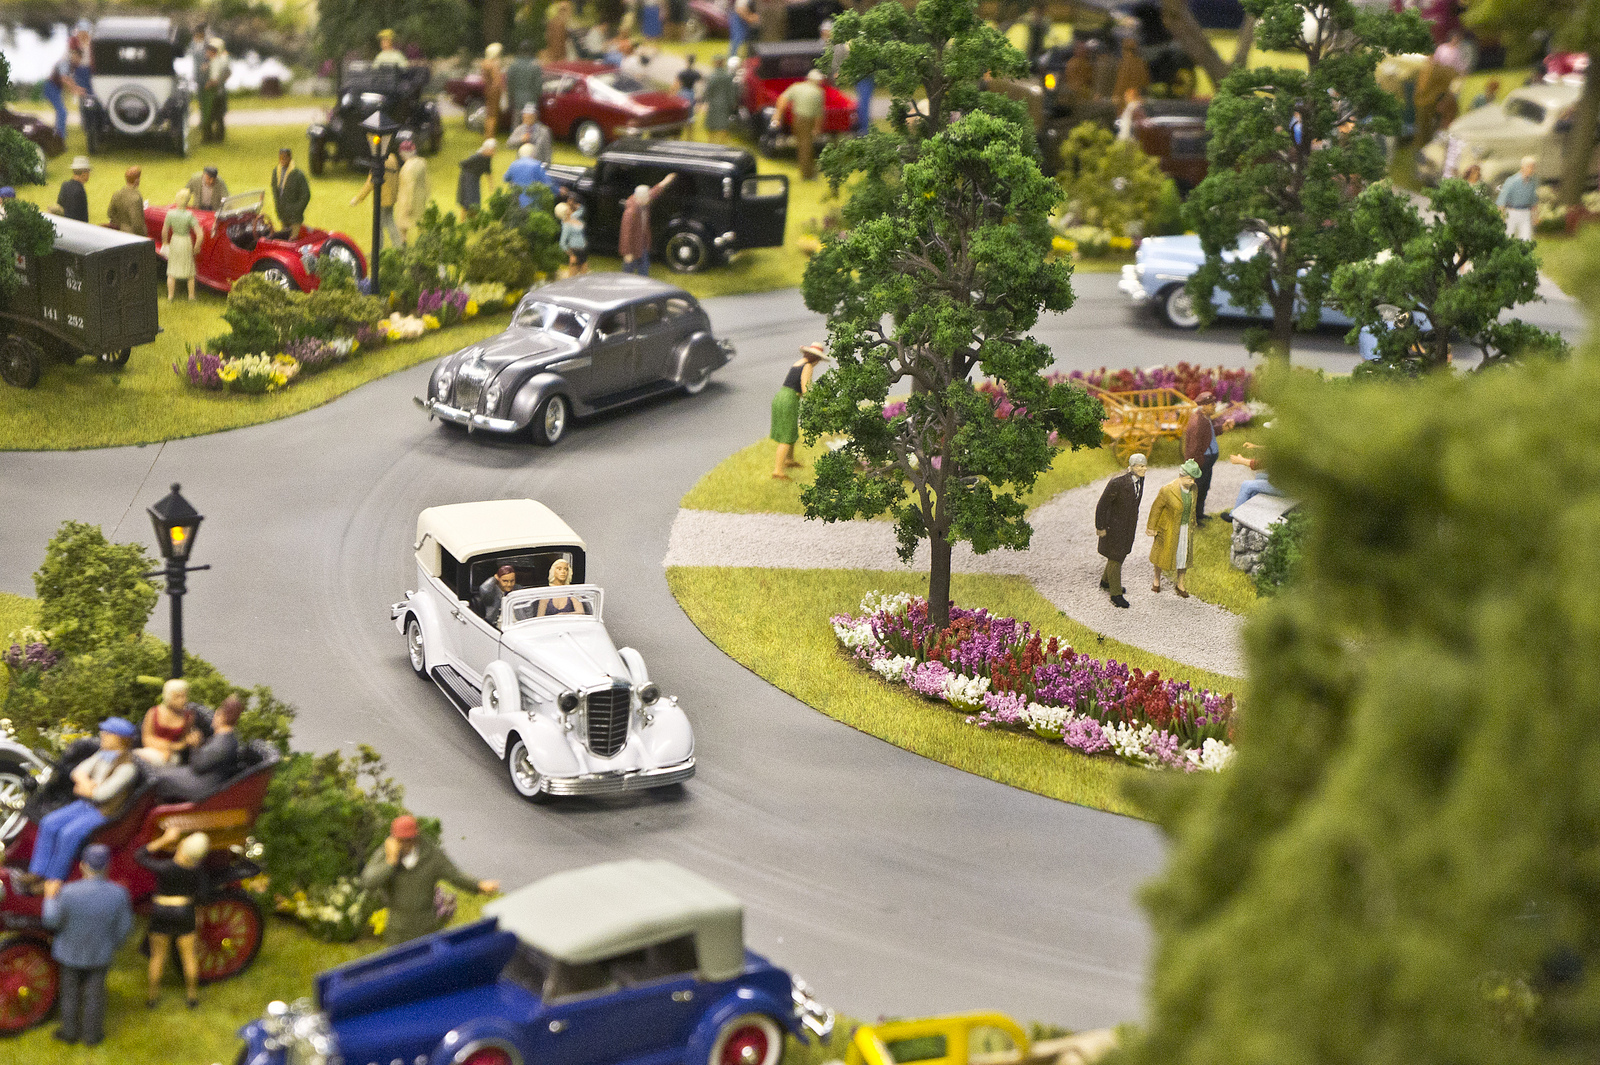 Miniature World, Victoria, B.C., photograph by Ruocaled